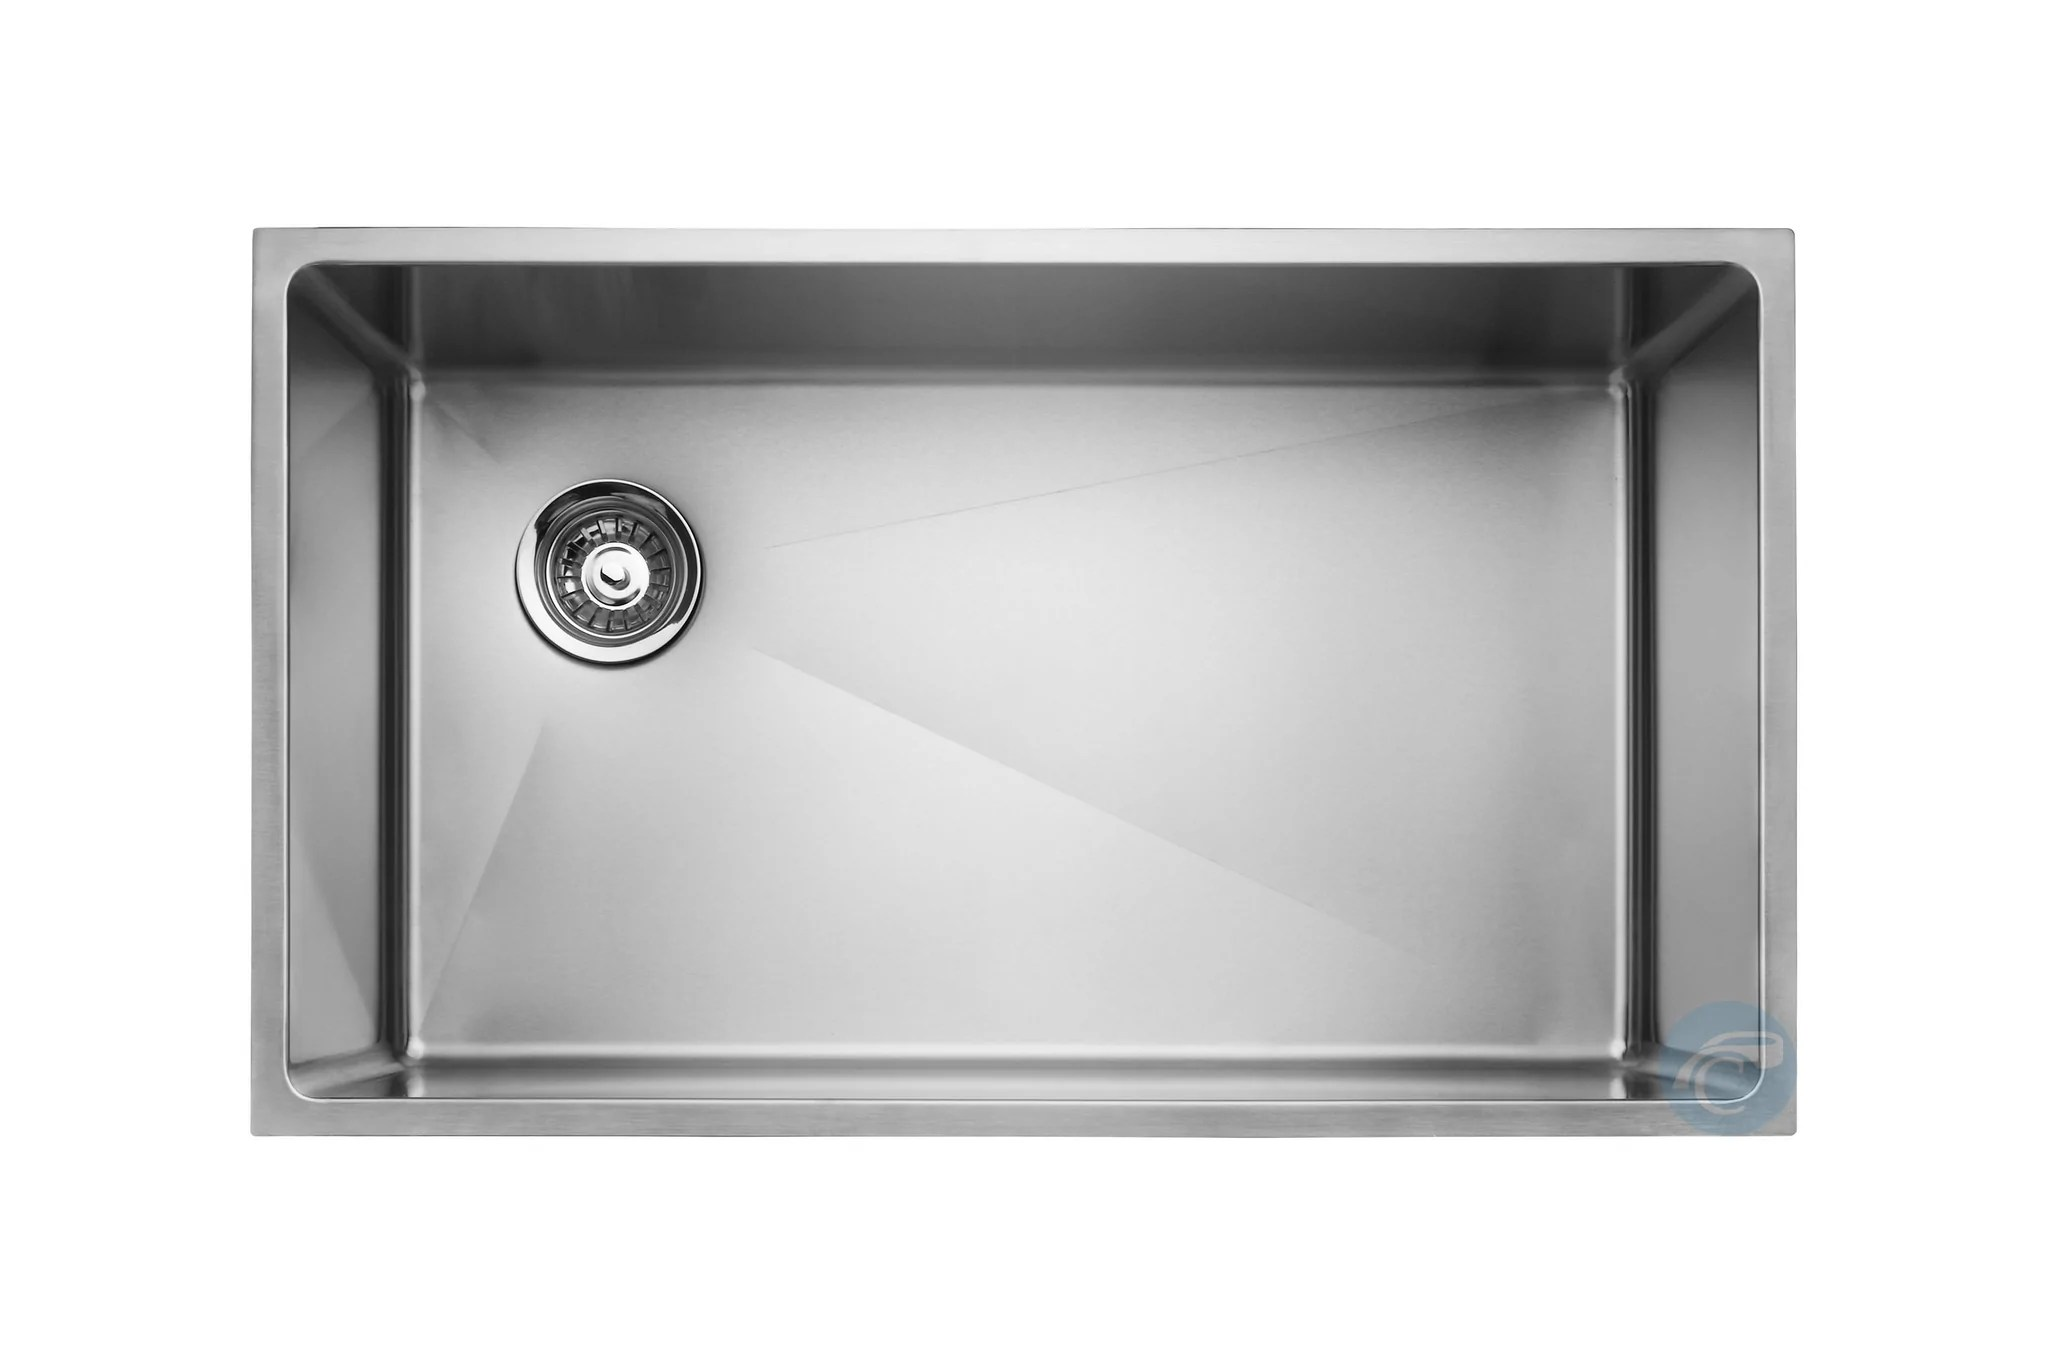 kitchen drain wall mounted cabinets master chef amiens single bowl undermount sink with on r chariot wholesale